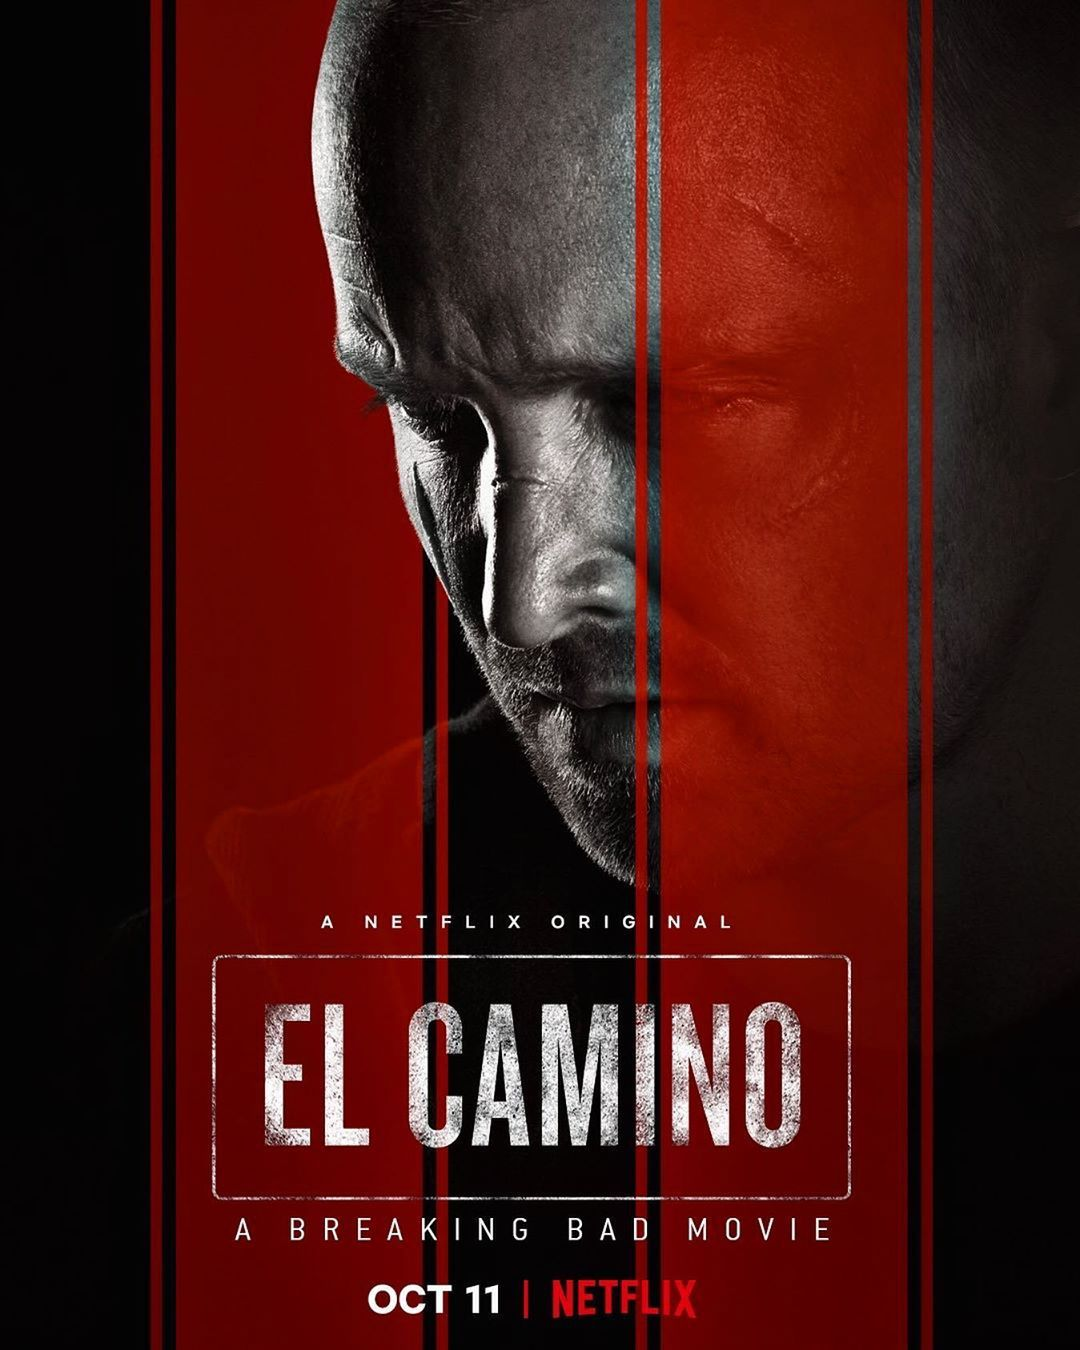 Jesse Pinkman Is On The Run In The First Elcamino A Breaking Bad Movie Poster Breaking Bad Movie Breaking Bad El Camino